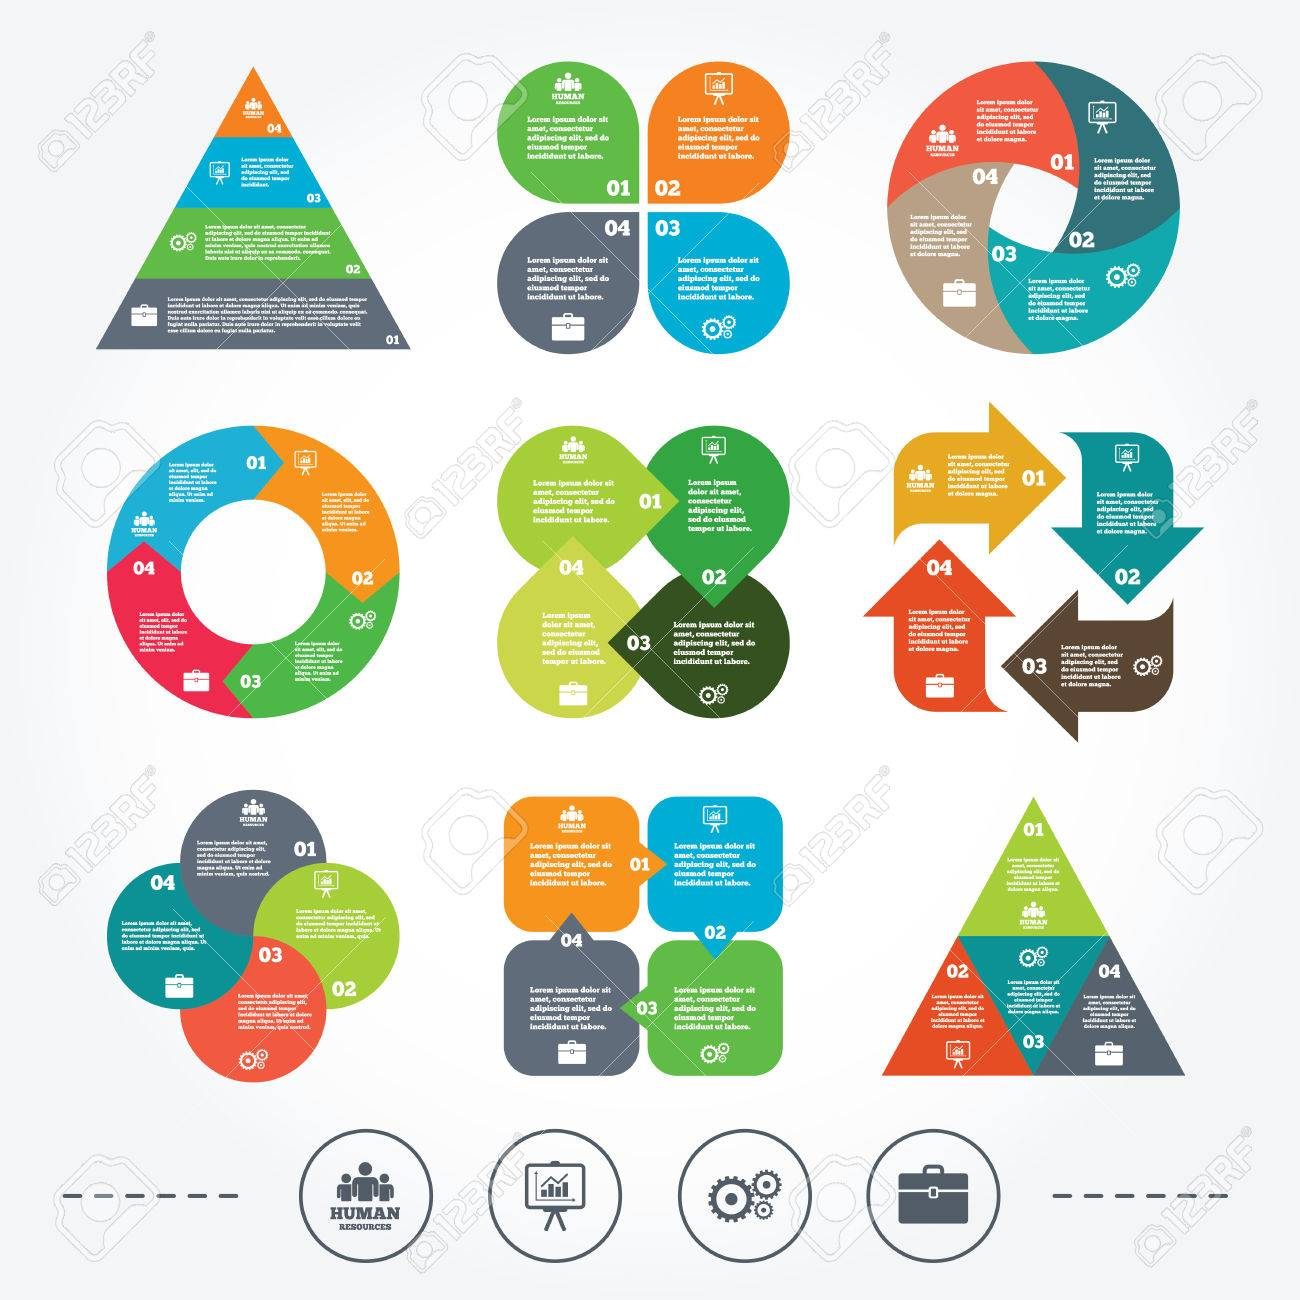 circle and triangle diagram charts  human resources and business    vector   circle and triangle diagram charts  human resources and business icons  presentation board   charts signs  case and gear symbols